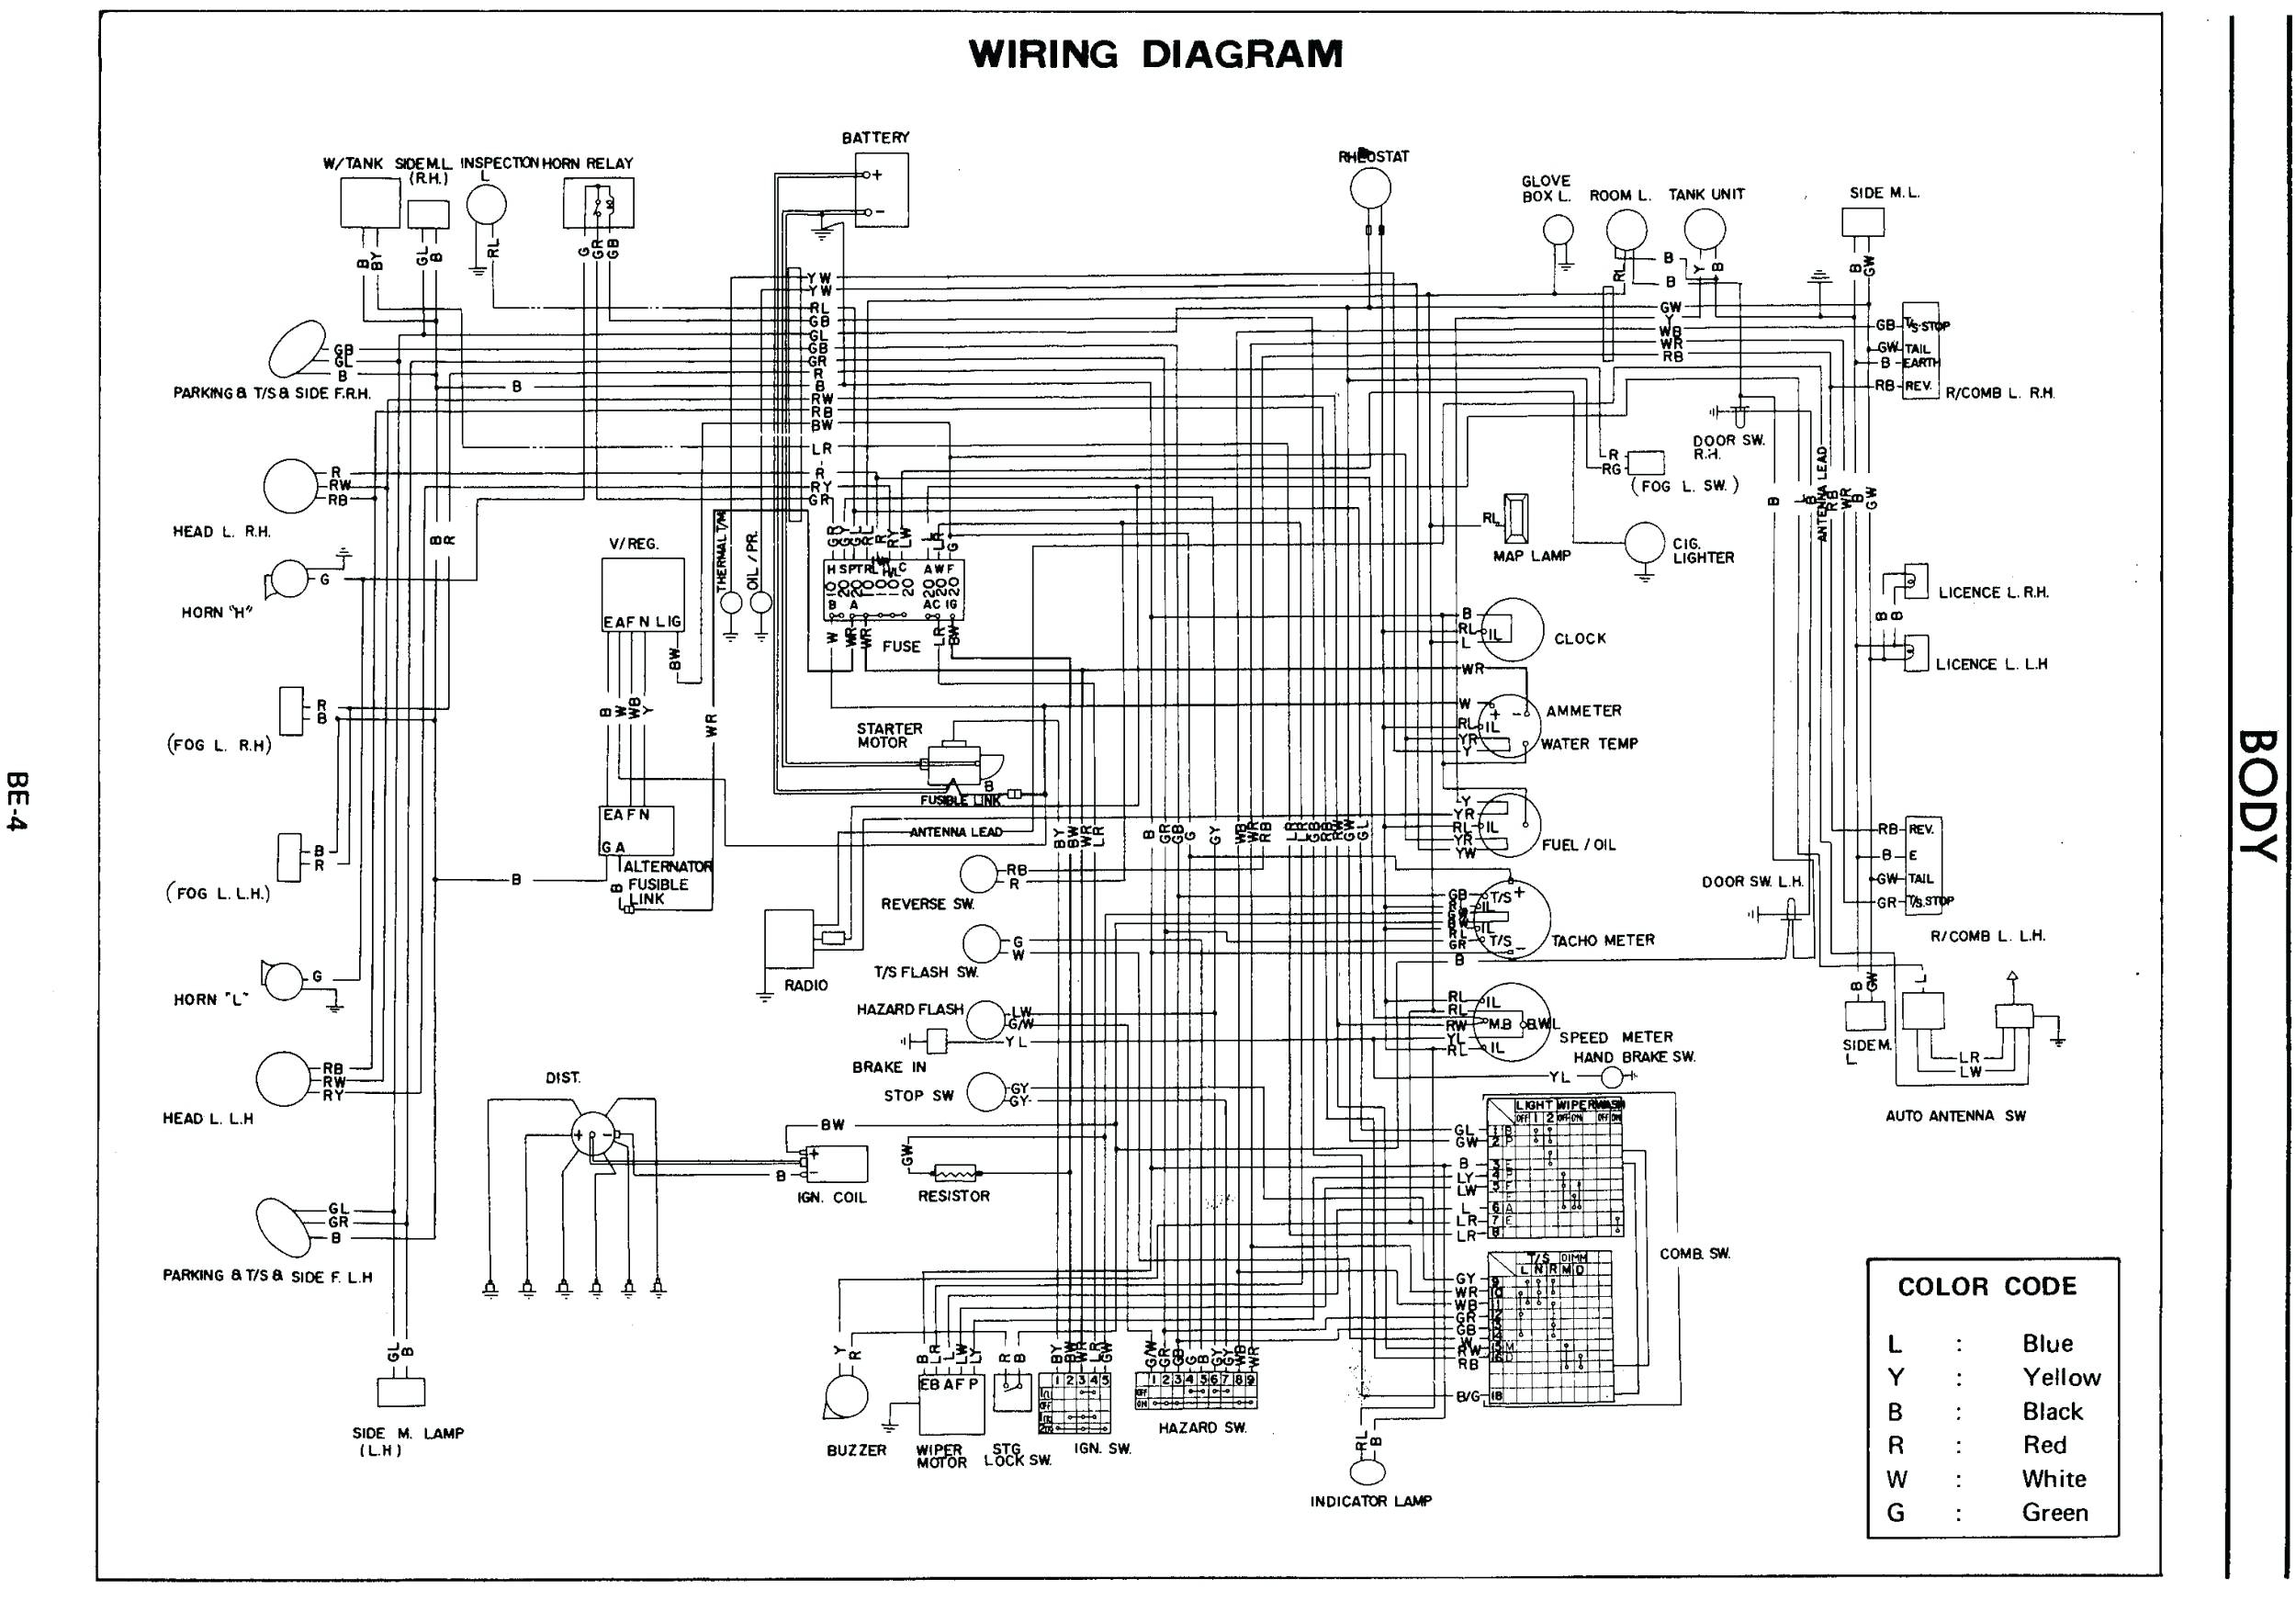 diagram] 220 3 wire wiring diagram cooper full version hd quality diagram  cooper - antiqueradiodiagrams.k-danse.fr  database diagramming tool - k-danse.fr